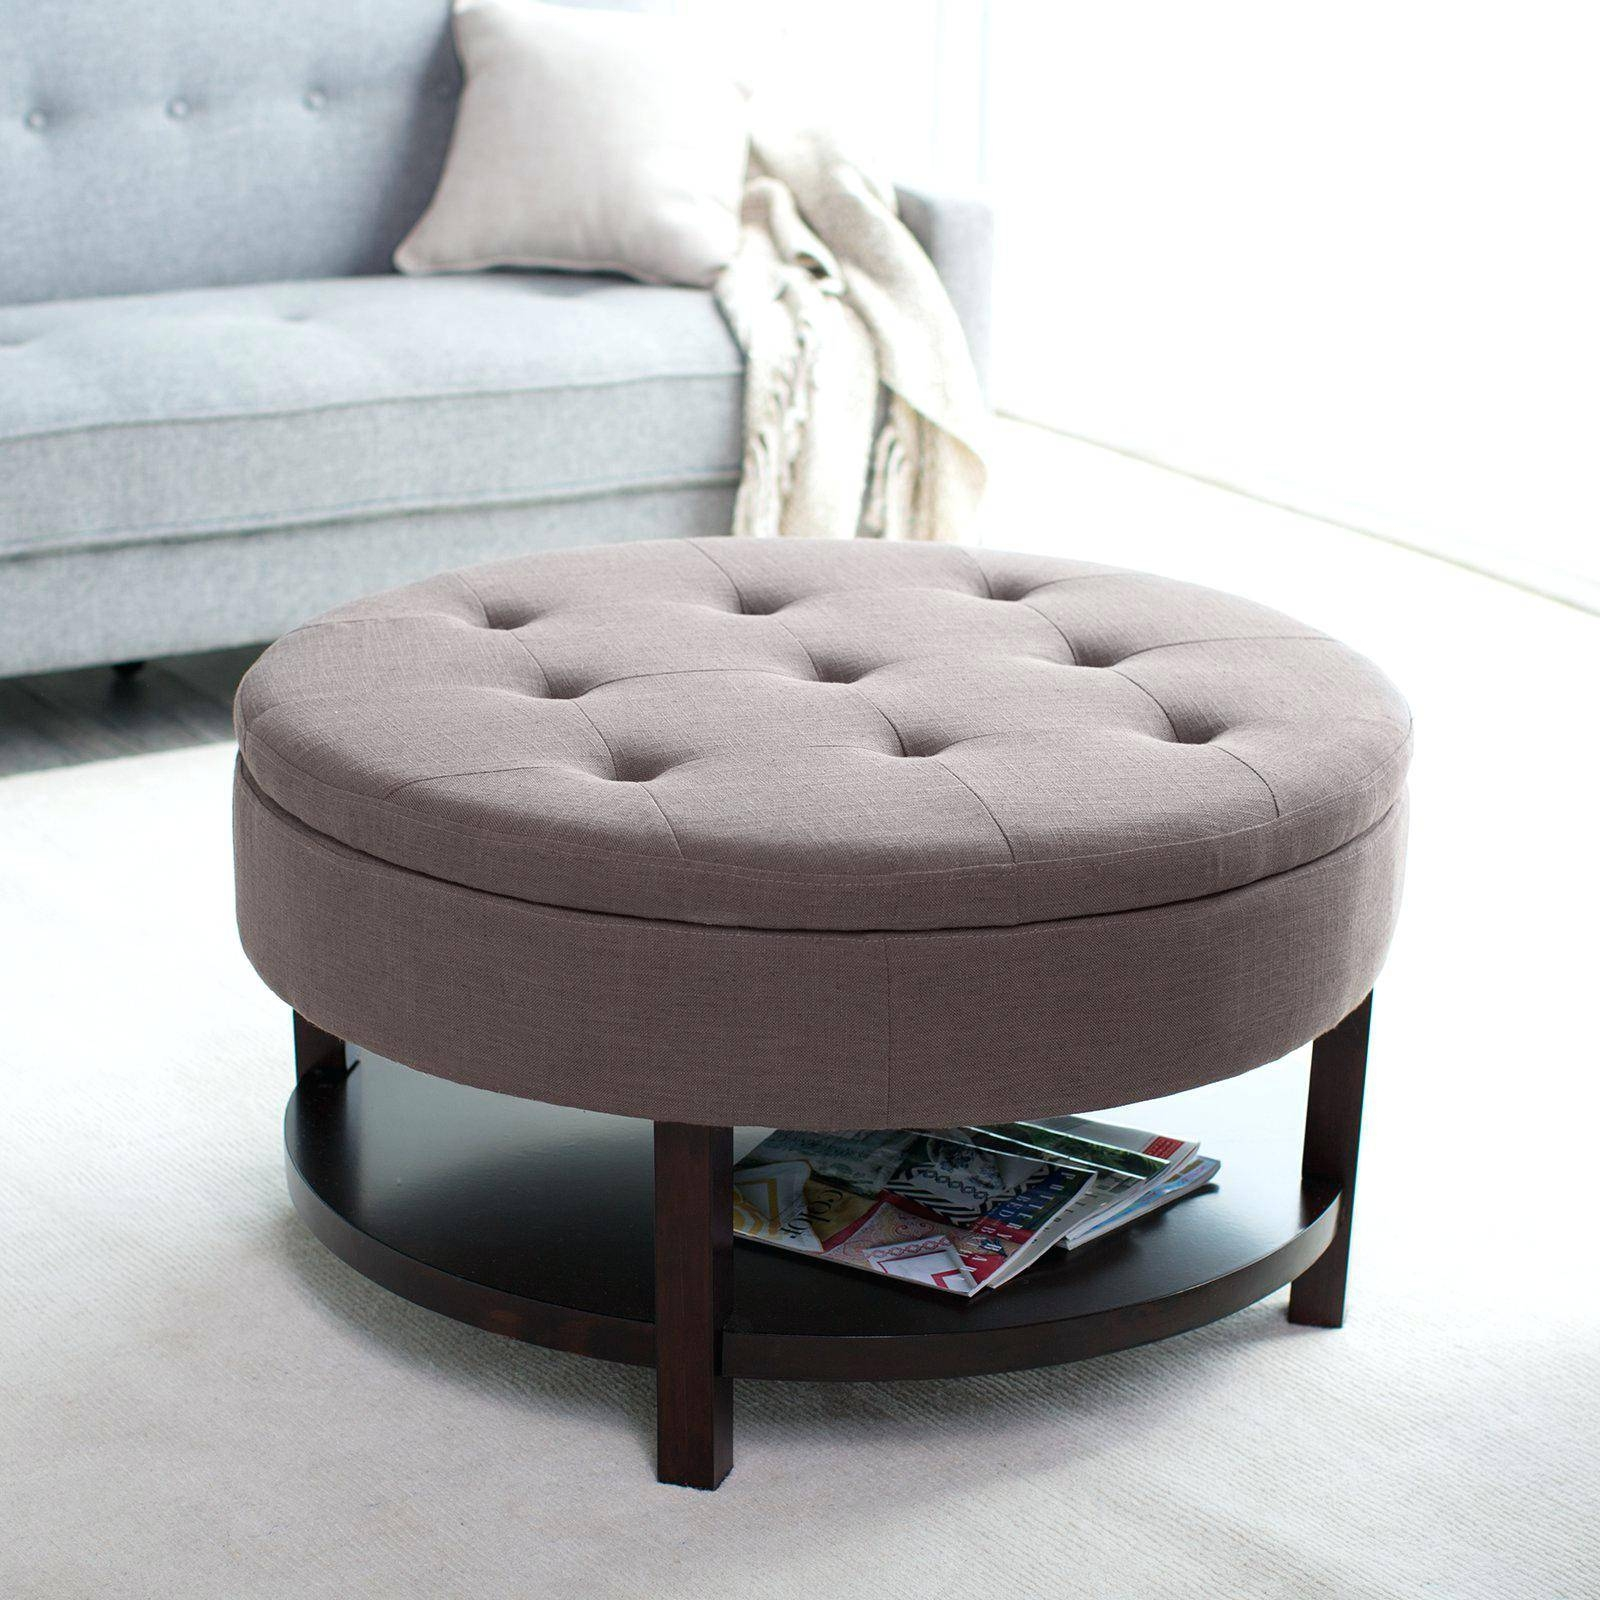 Coffee Tables Storage Circular Table With A Wire Box   Jericho In Round Coffee Tables With Storages (Photo 17 of 30)